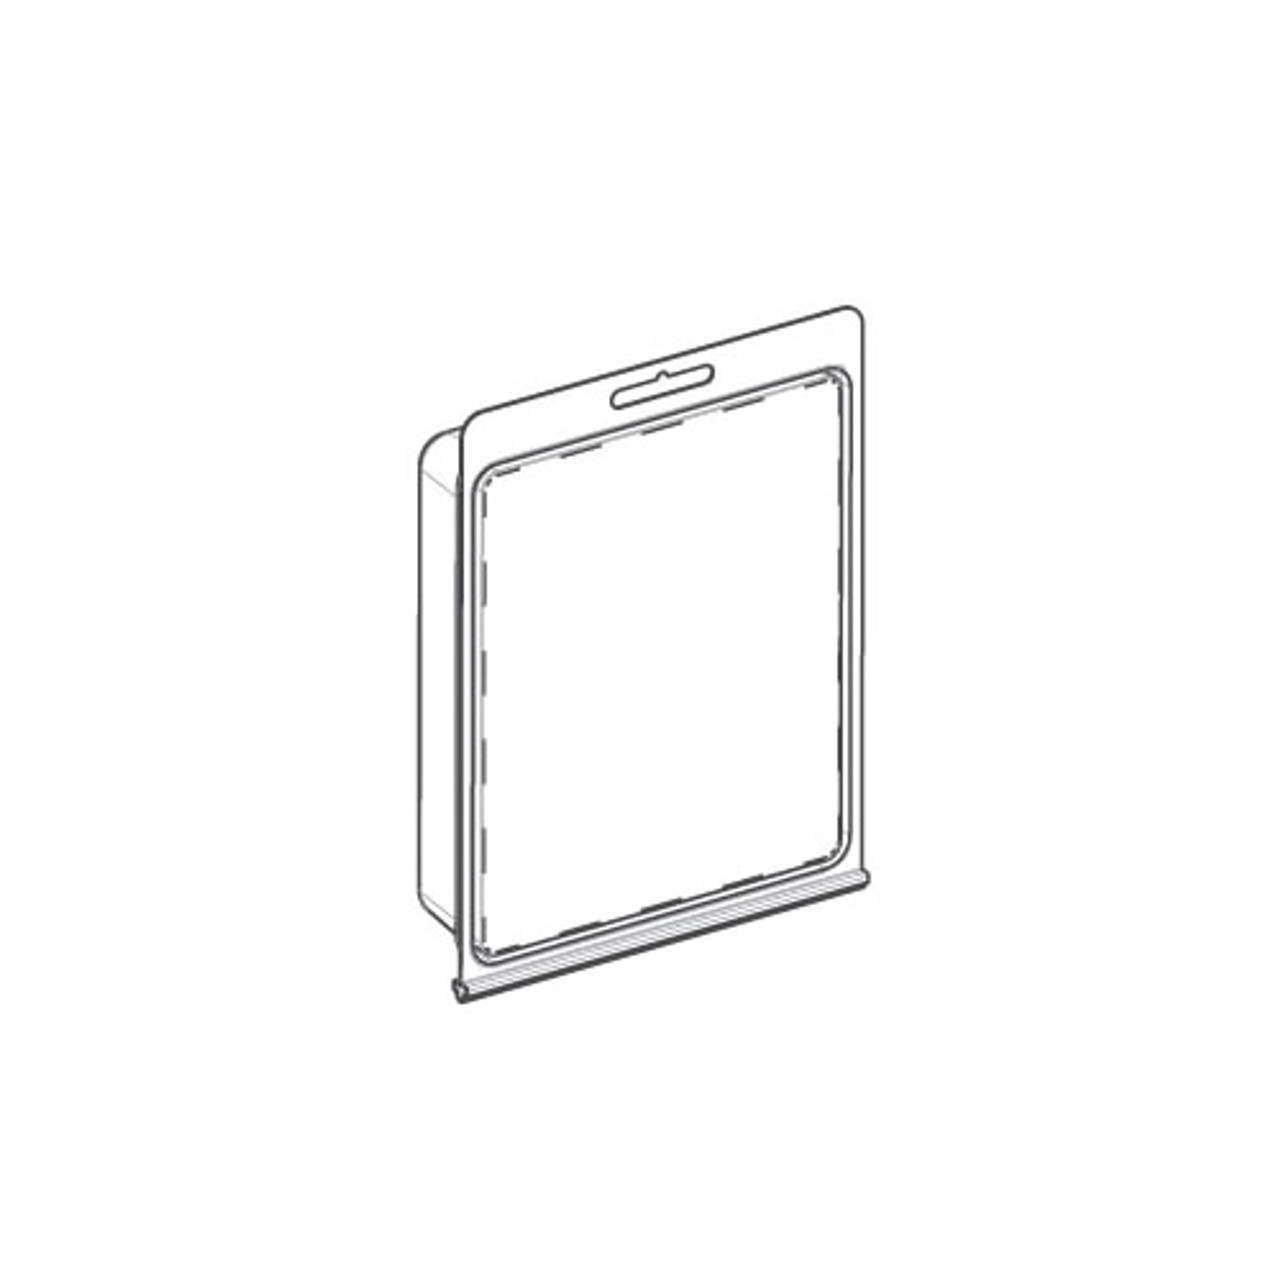 492684 - Stock Clamshell Packaging